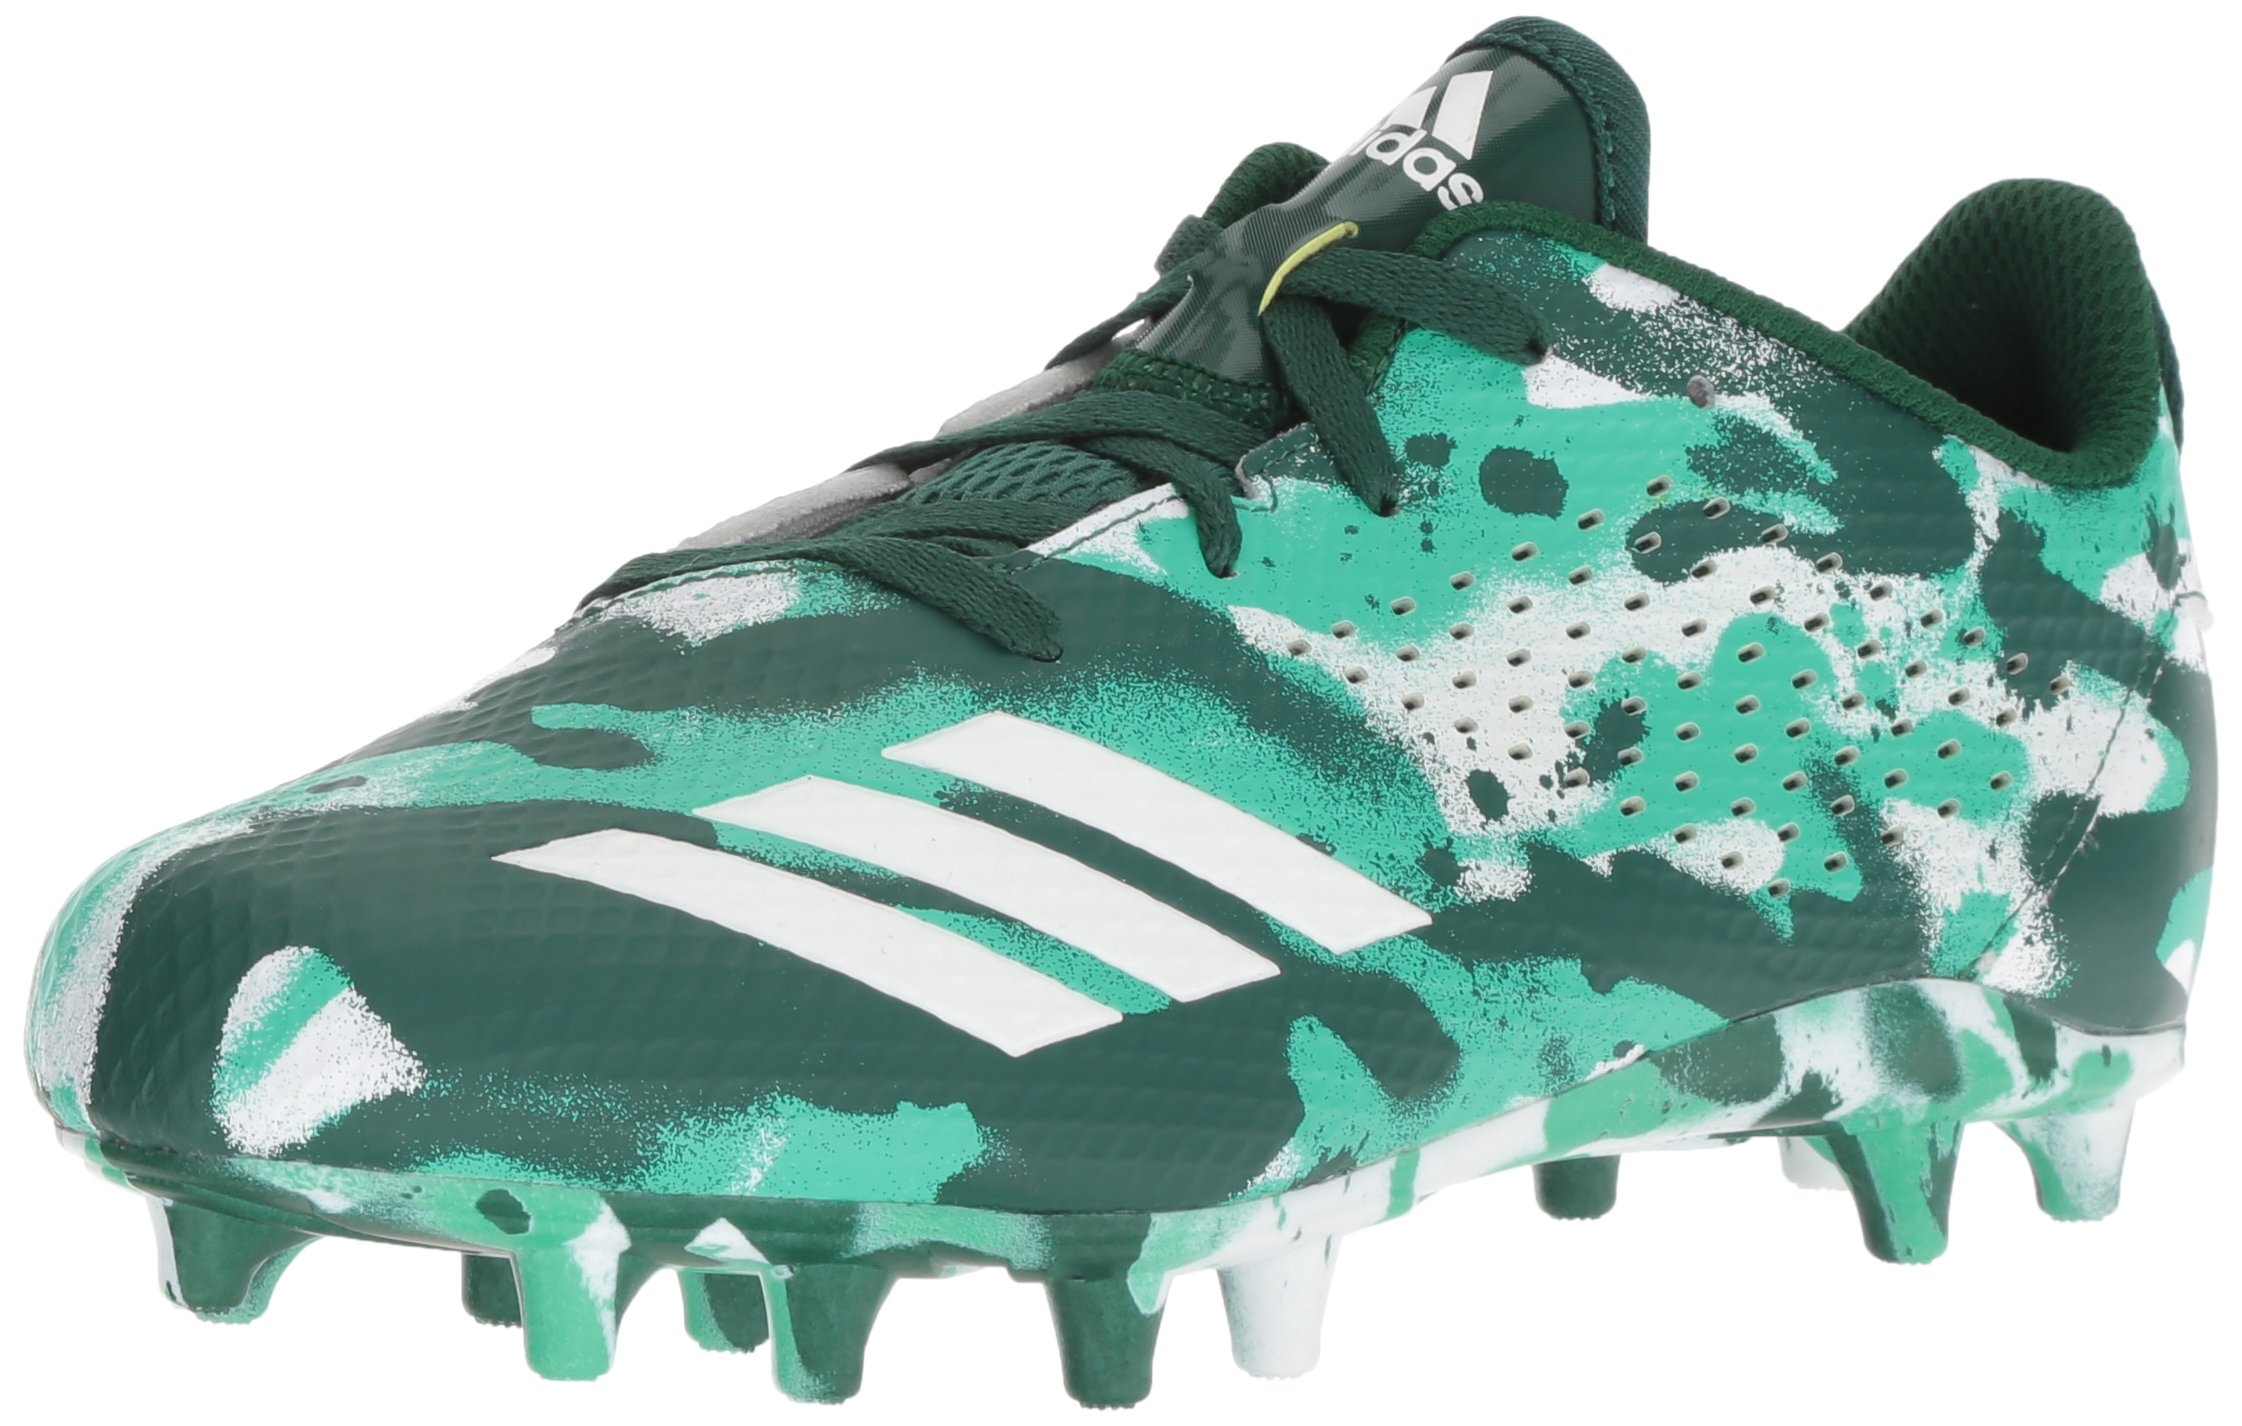 adidas Unisex Adizero 5-Star 7.0 Football Shoe, White/Collegiate hi-res Green, 6 M US Big Kid